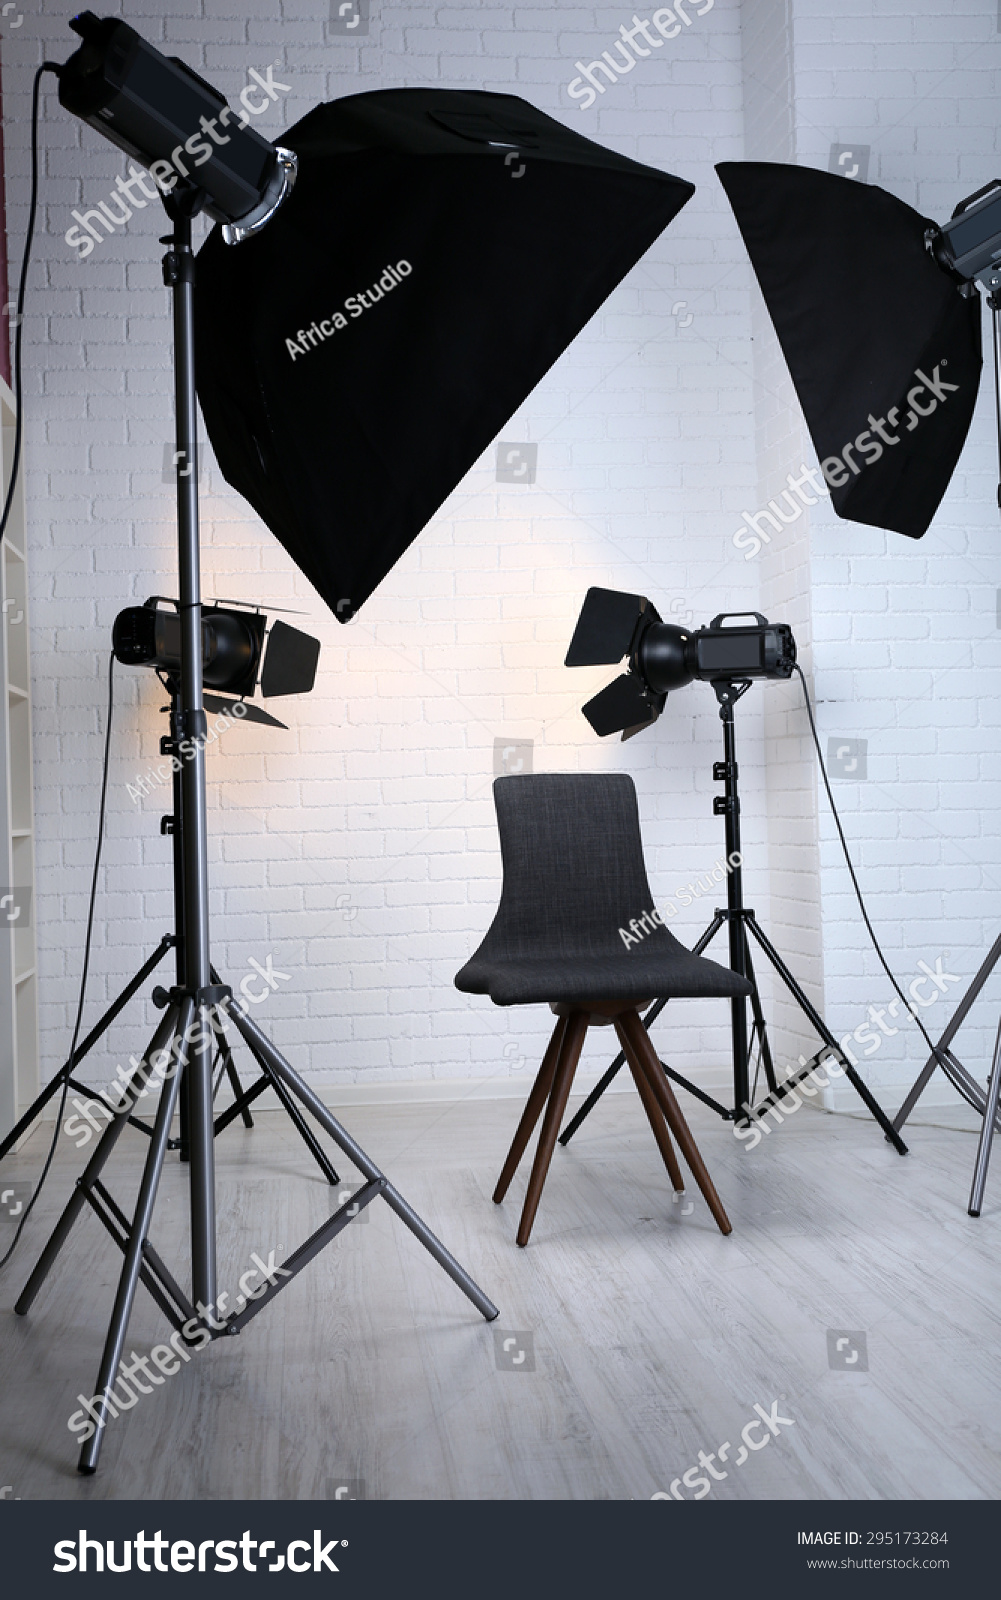 lighting studio accessories photography silver electronics black photographic from stand photo consumer shipping equipment free in on item umbrella kit